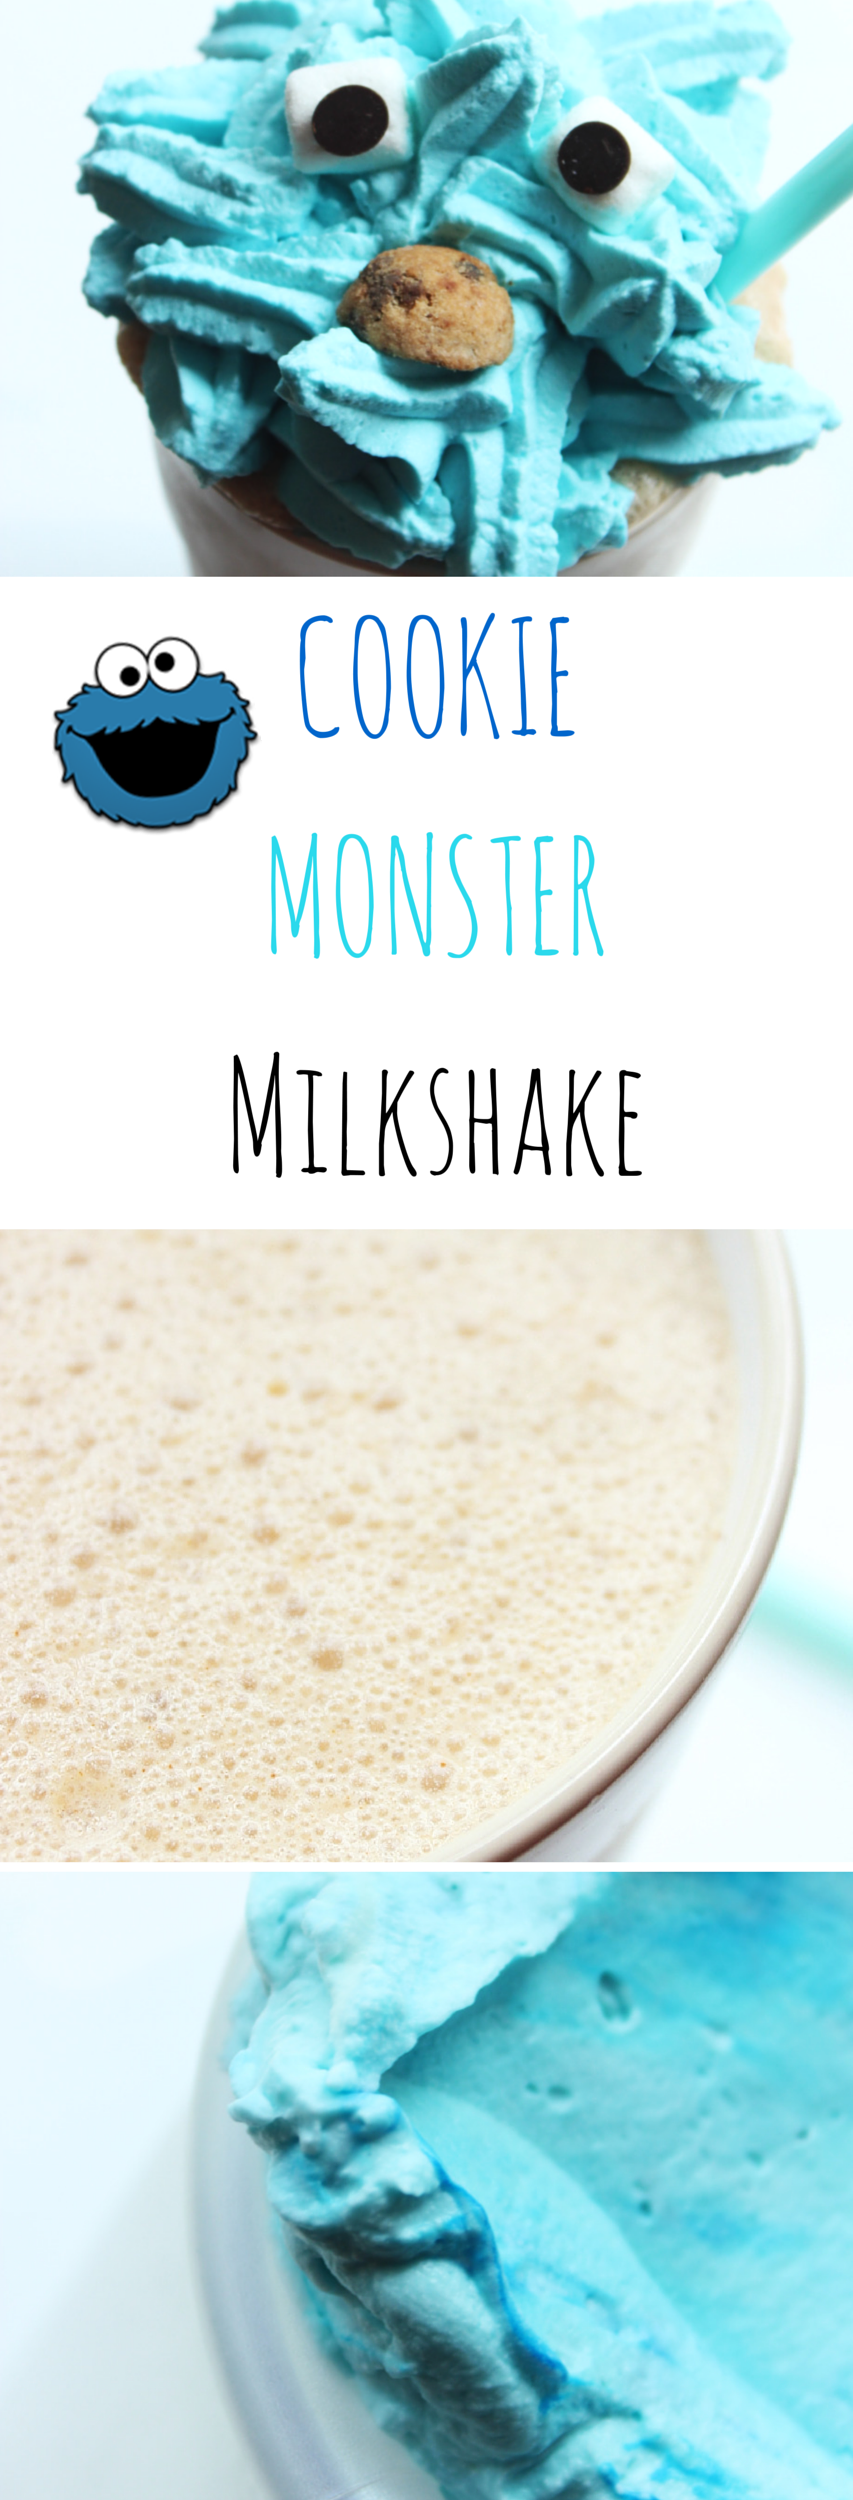 Cookie Monster Milkshake with homemade Eggless Chocolate Chip Cookie Dough